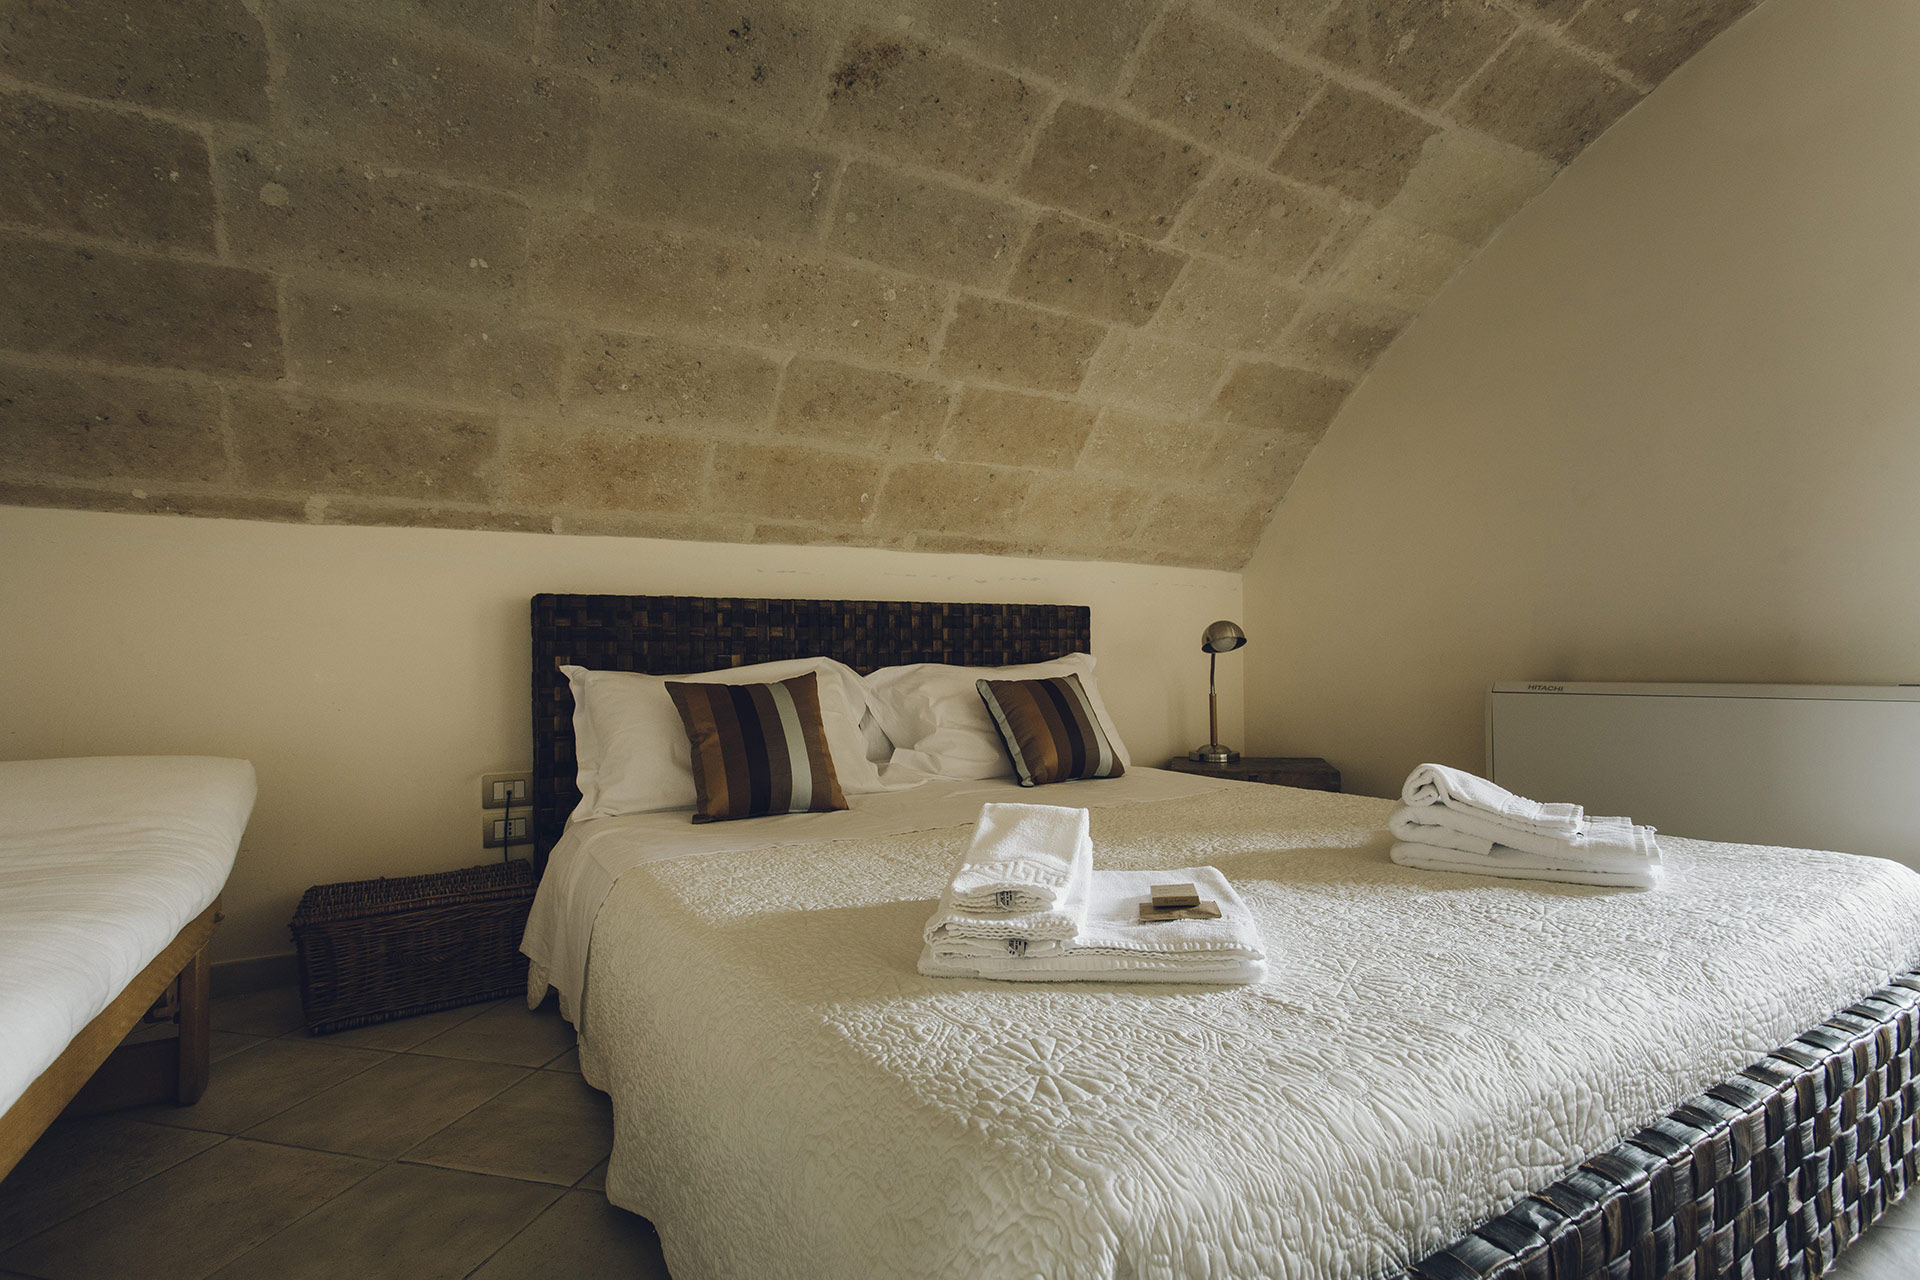 Bed and breakfast Matera granaio